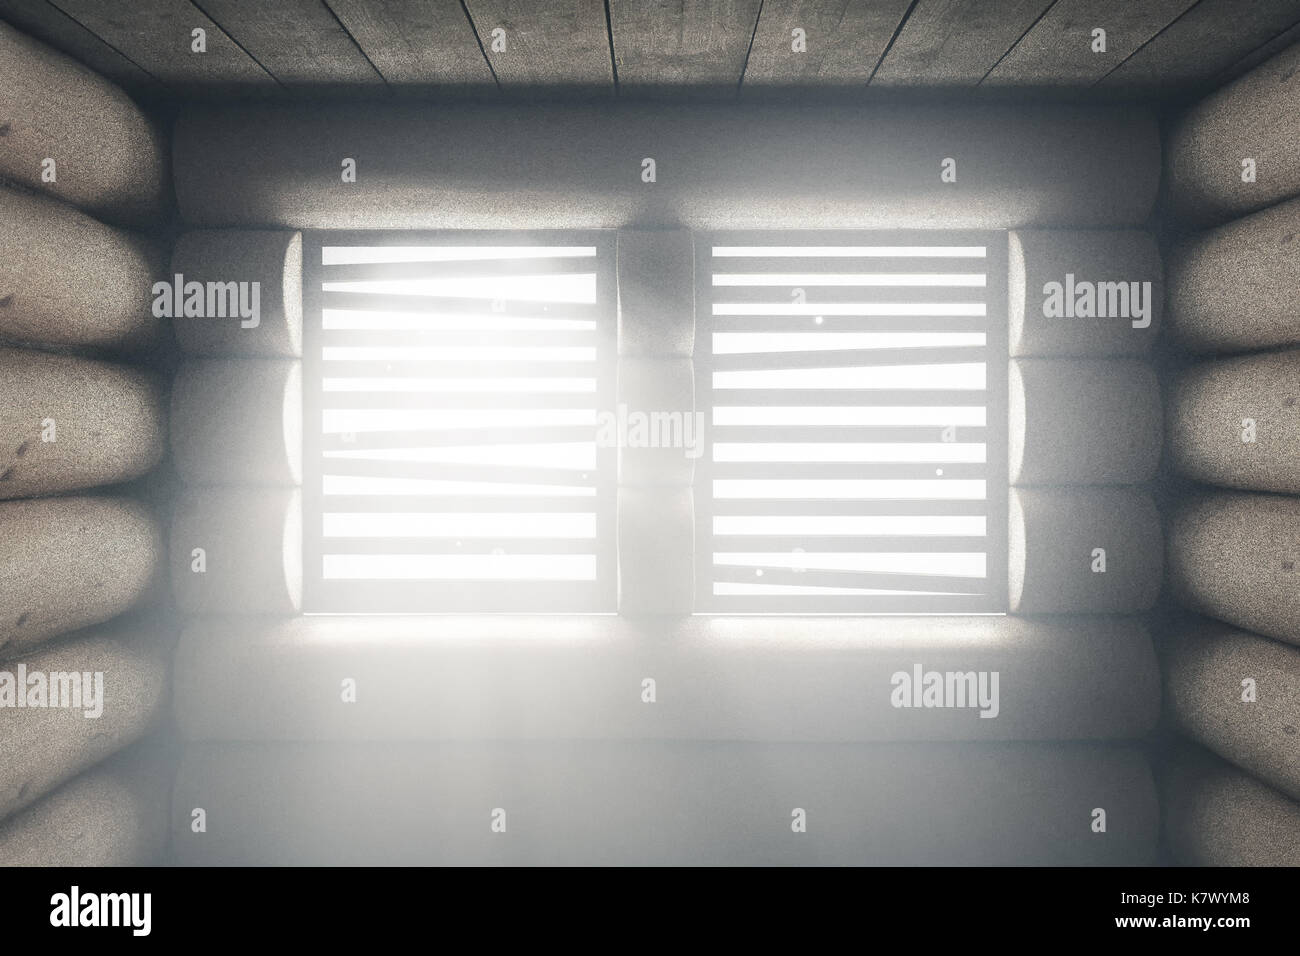 3d rendering of wooden cabin with light beams through window - Stock Image